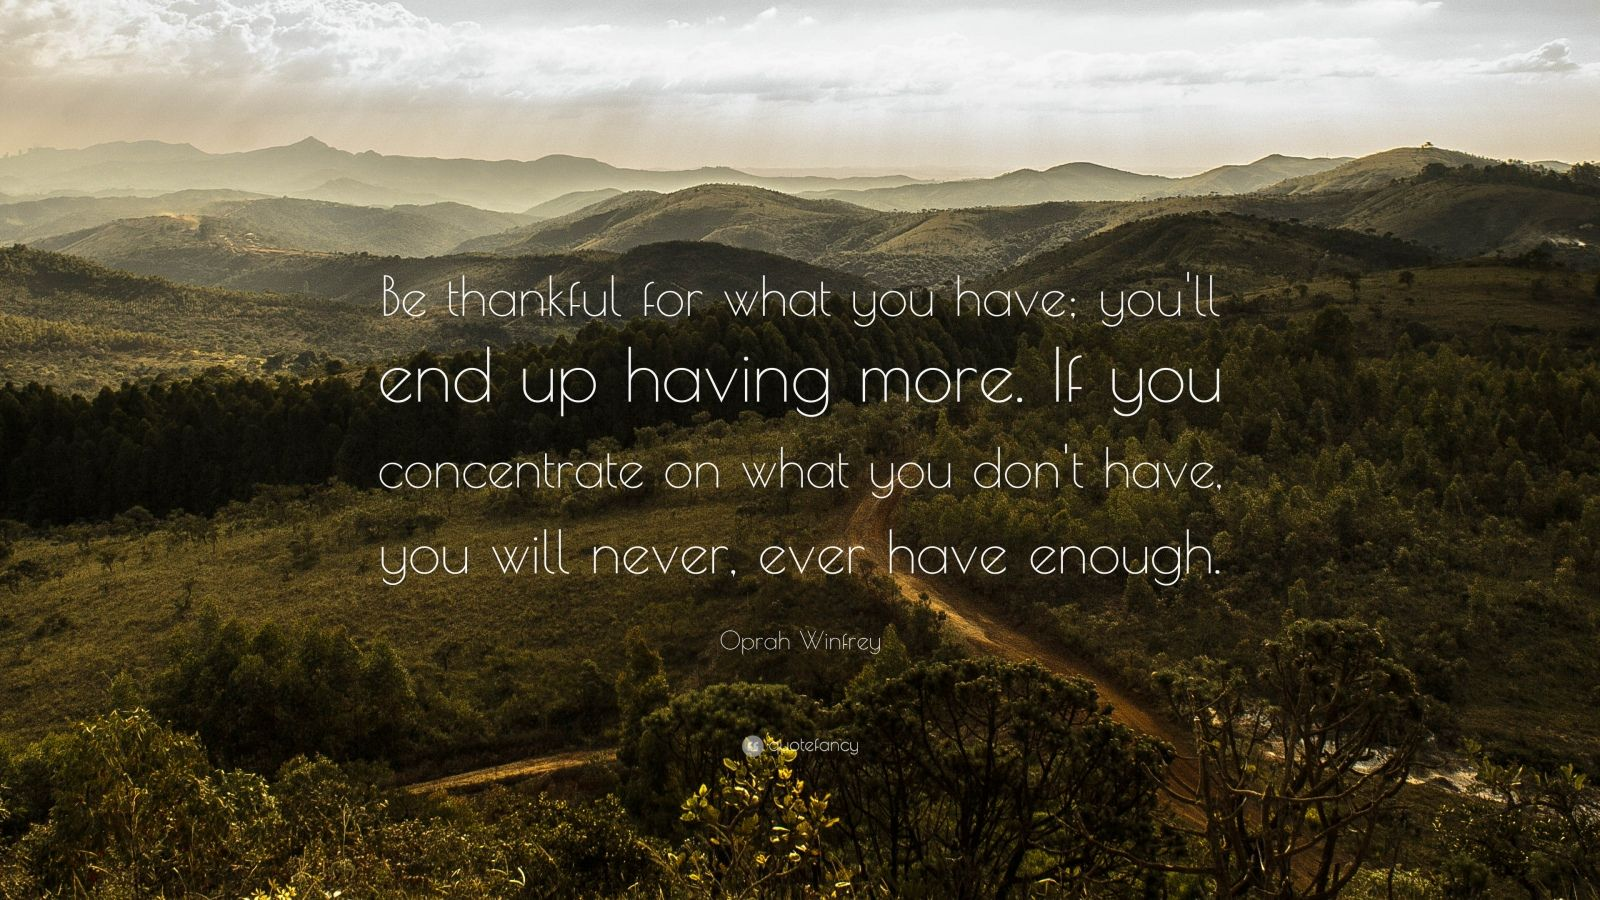 """Oprah Winfrey Quote: """"Be thankful for what you have; you'll end up having more. If you concentrate on what you don't have, you will never, ever have enough."""""""